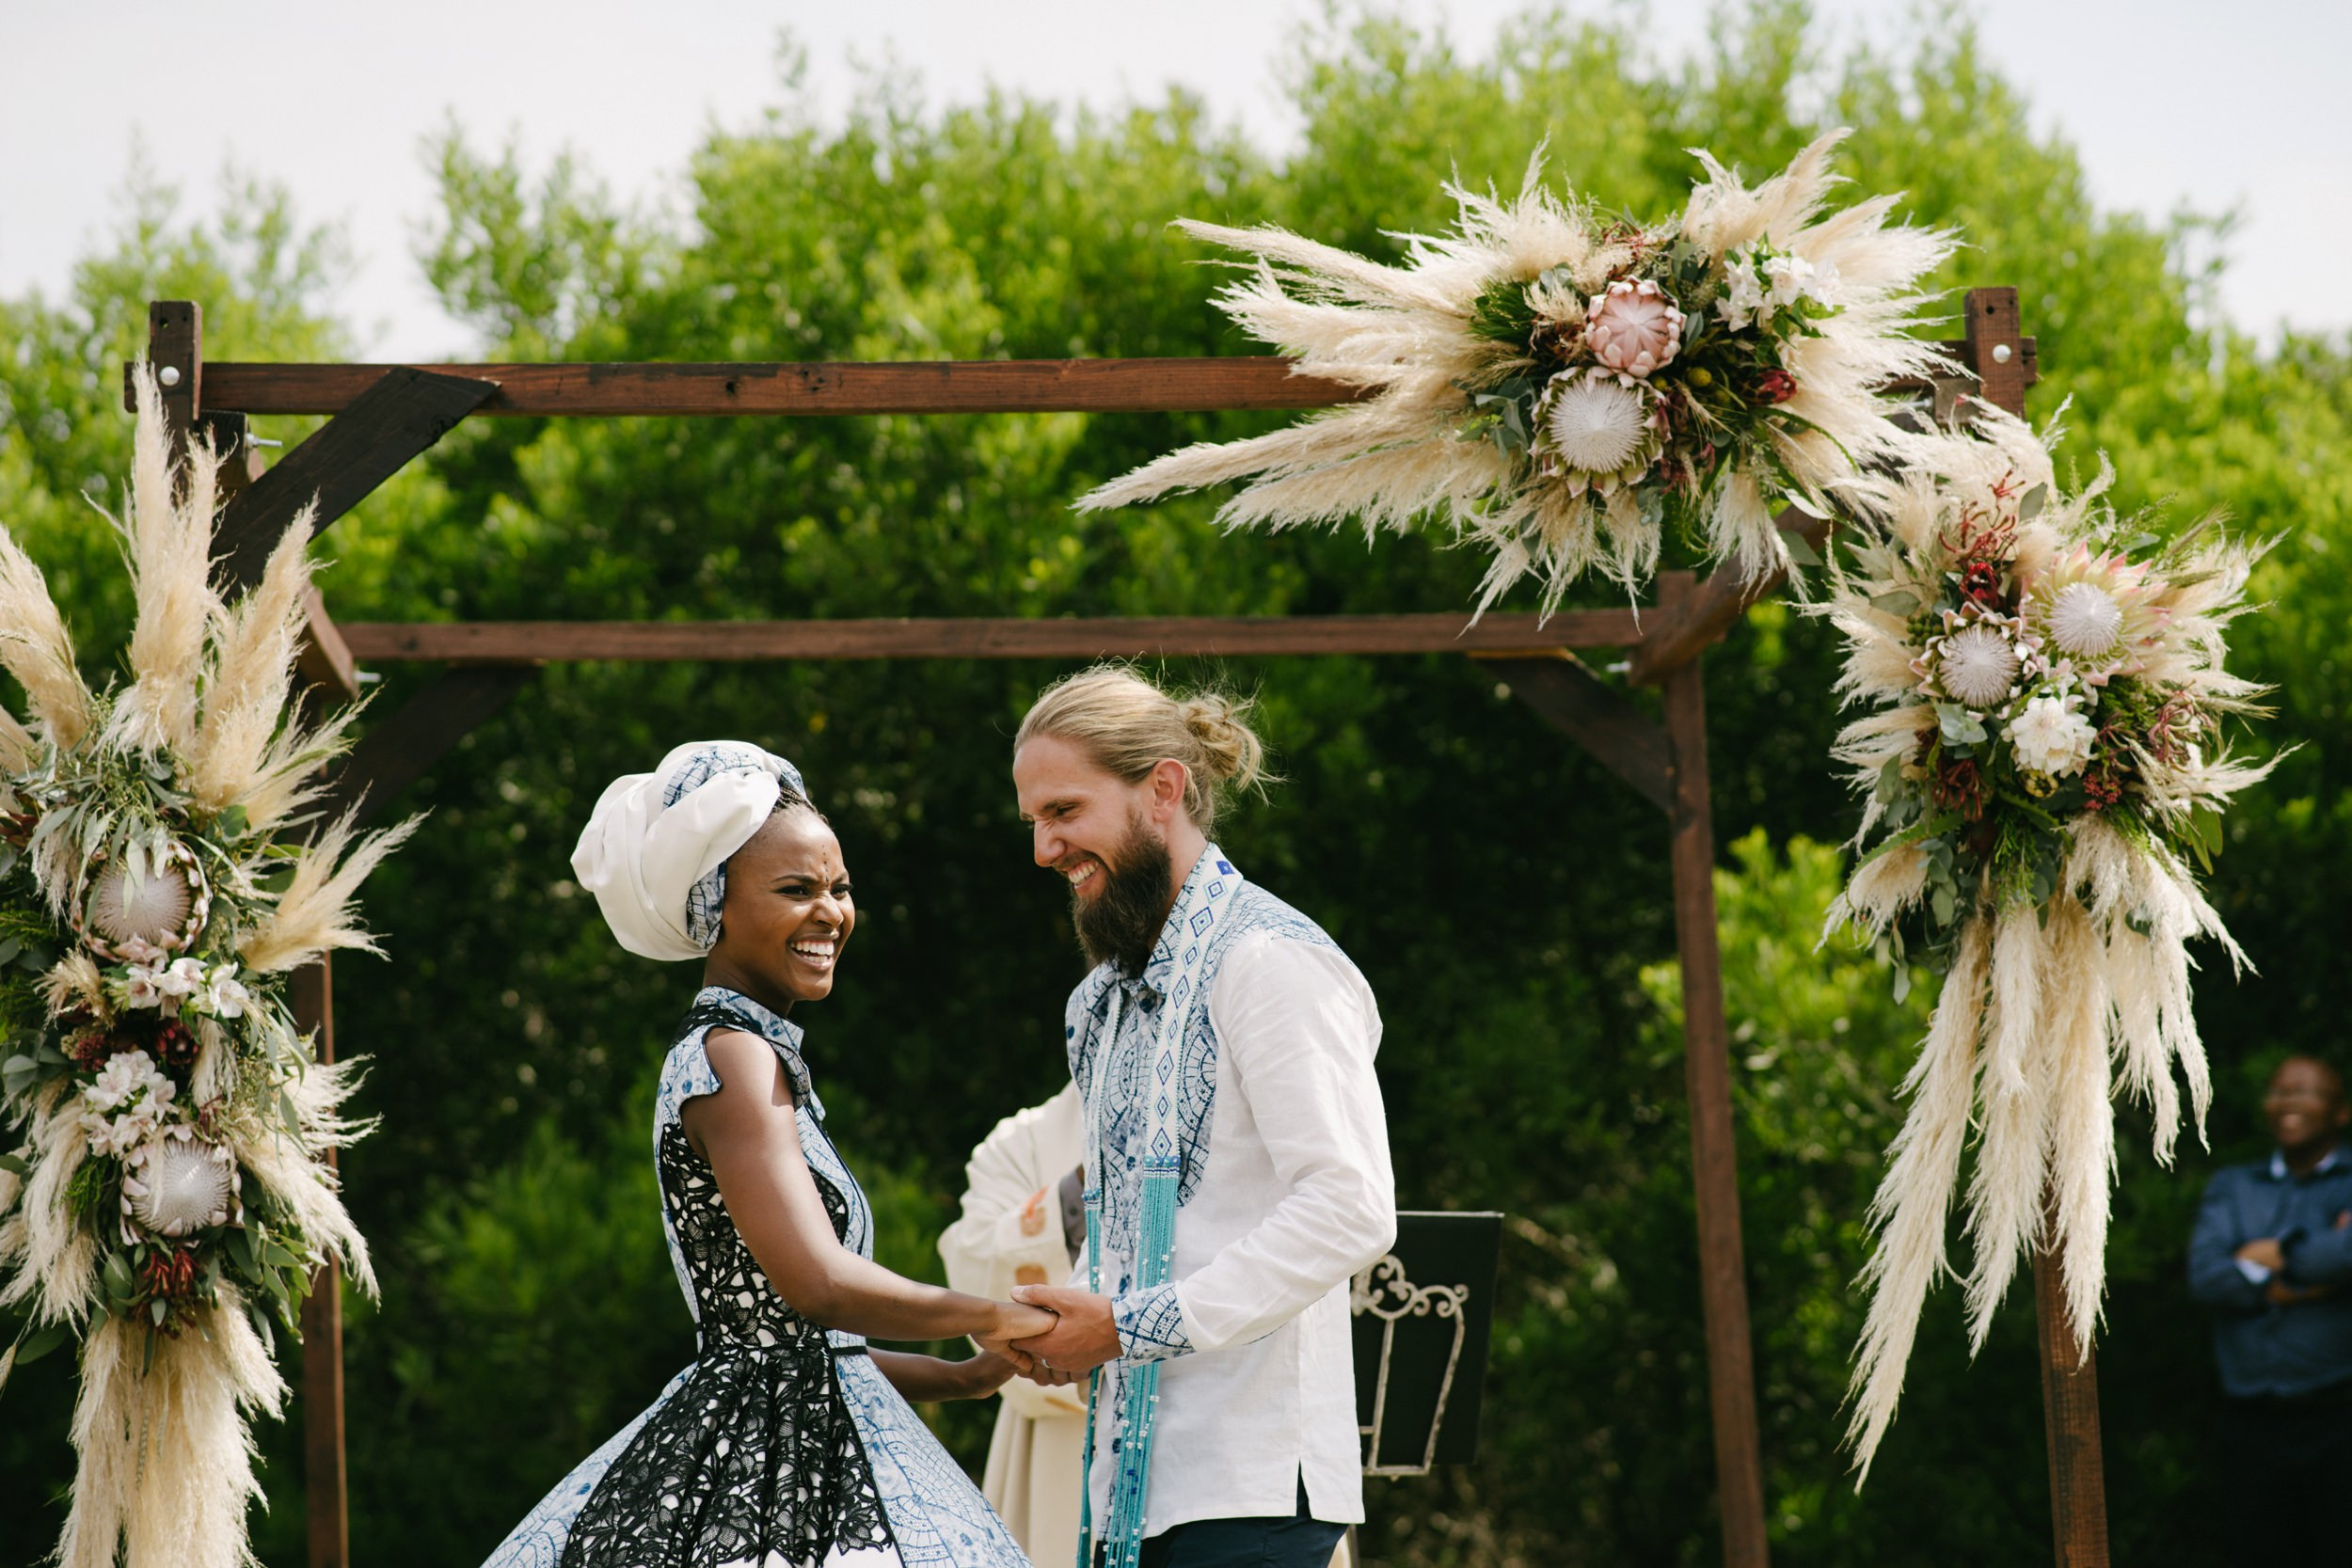 Amanda & Dennis - A traditional Xhosa wedding in the Eastern Cape ofSouth Africa